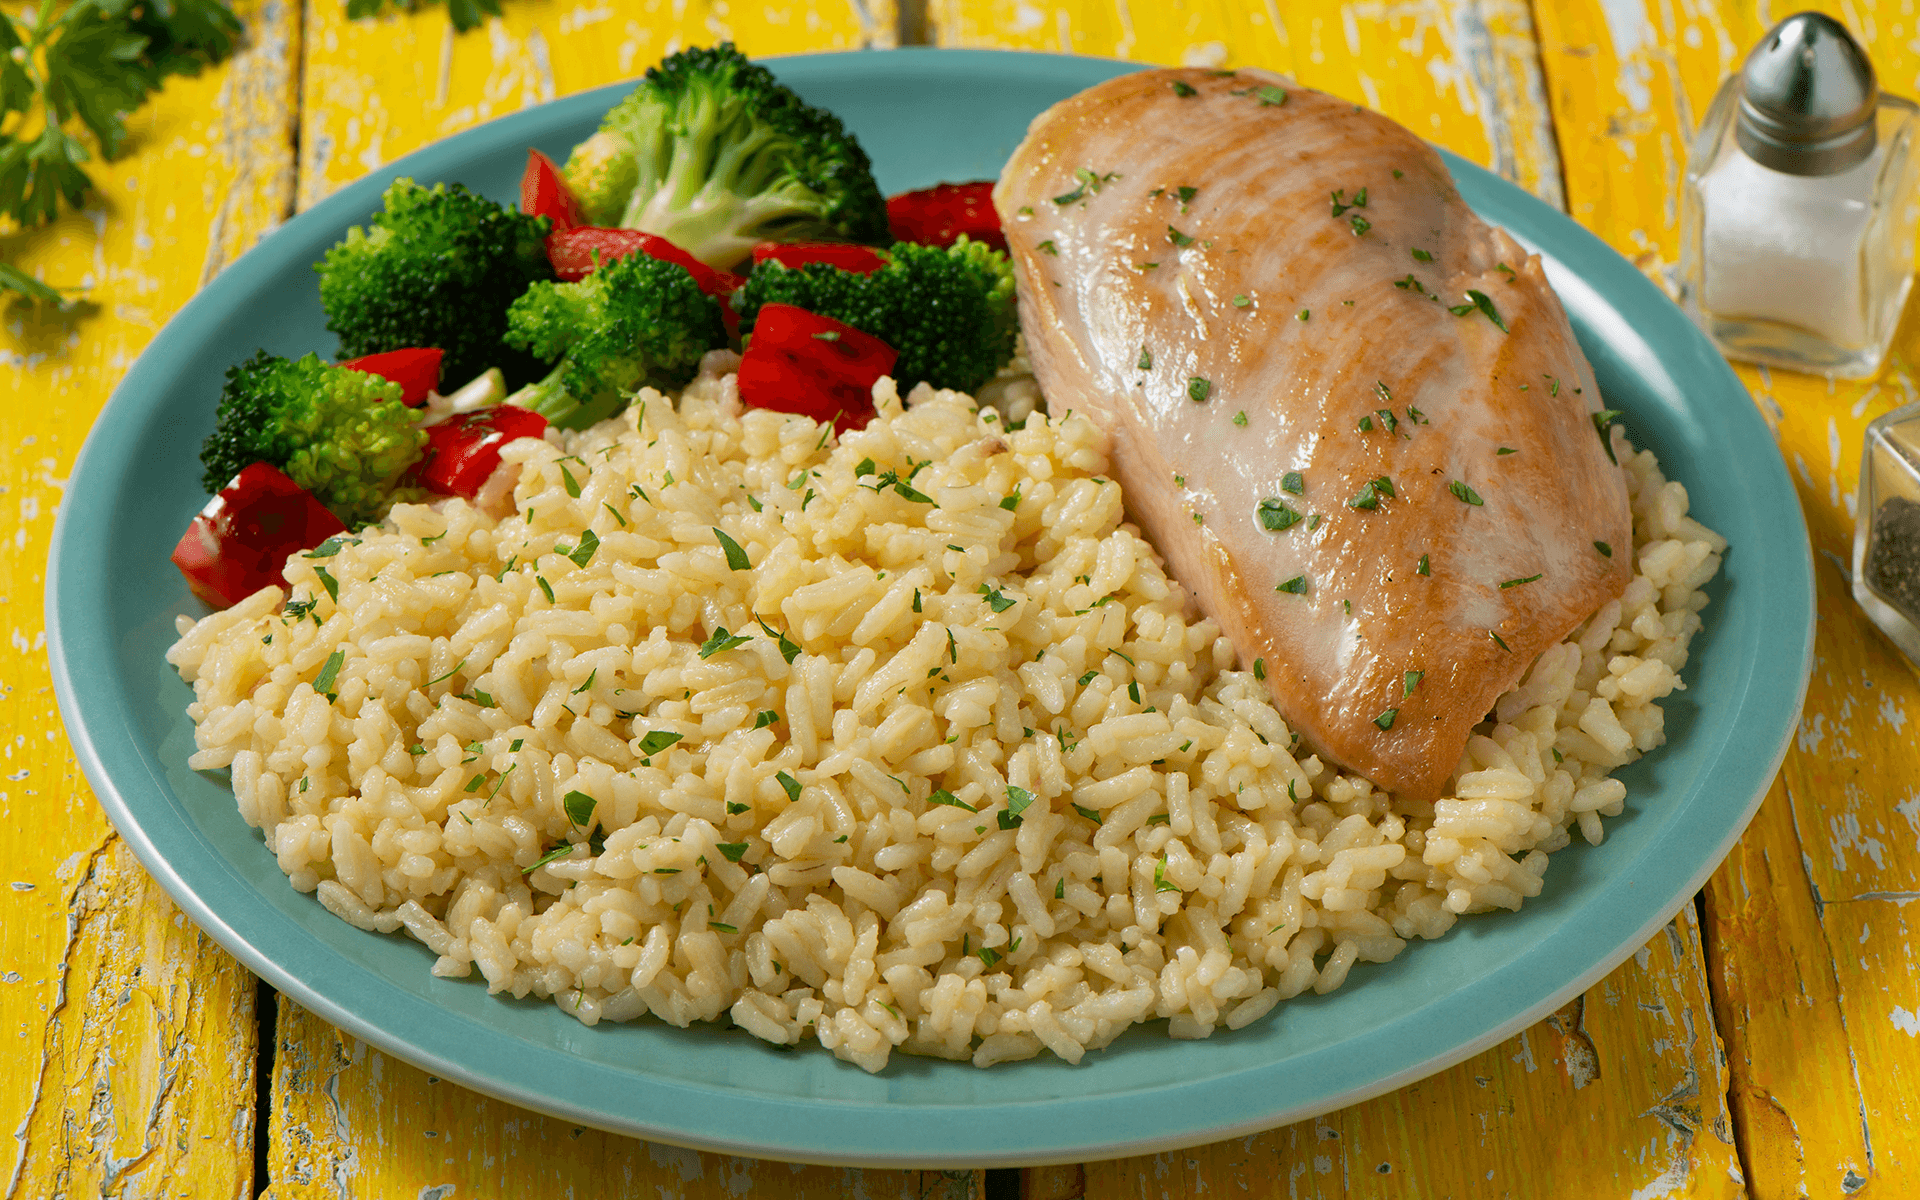 chicken breast and rice dinner with vegetables